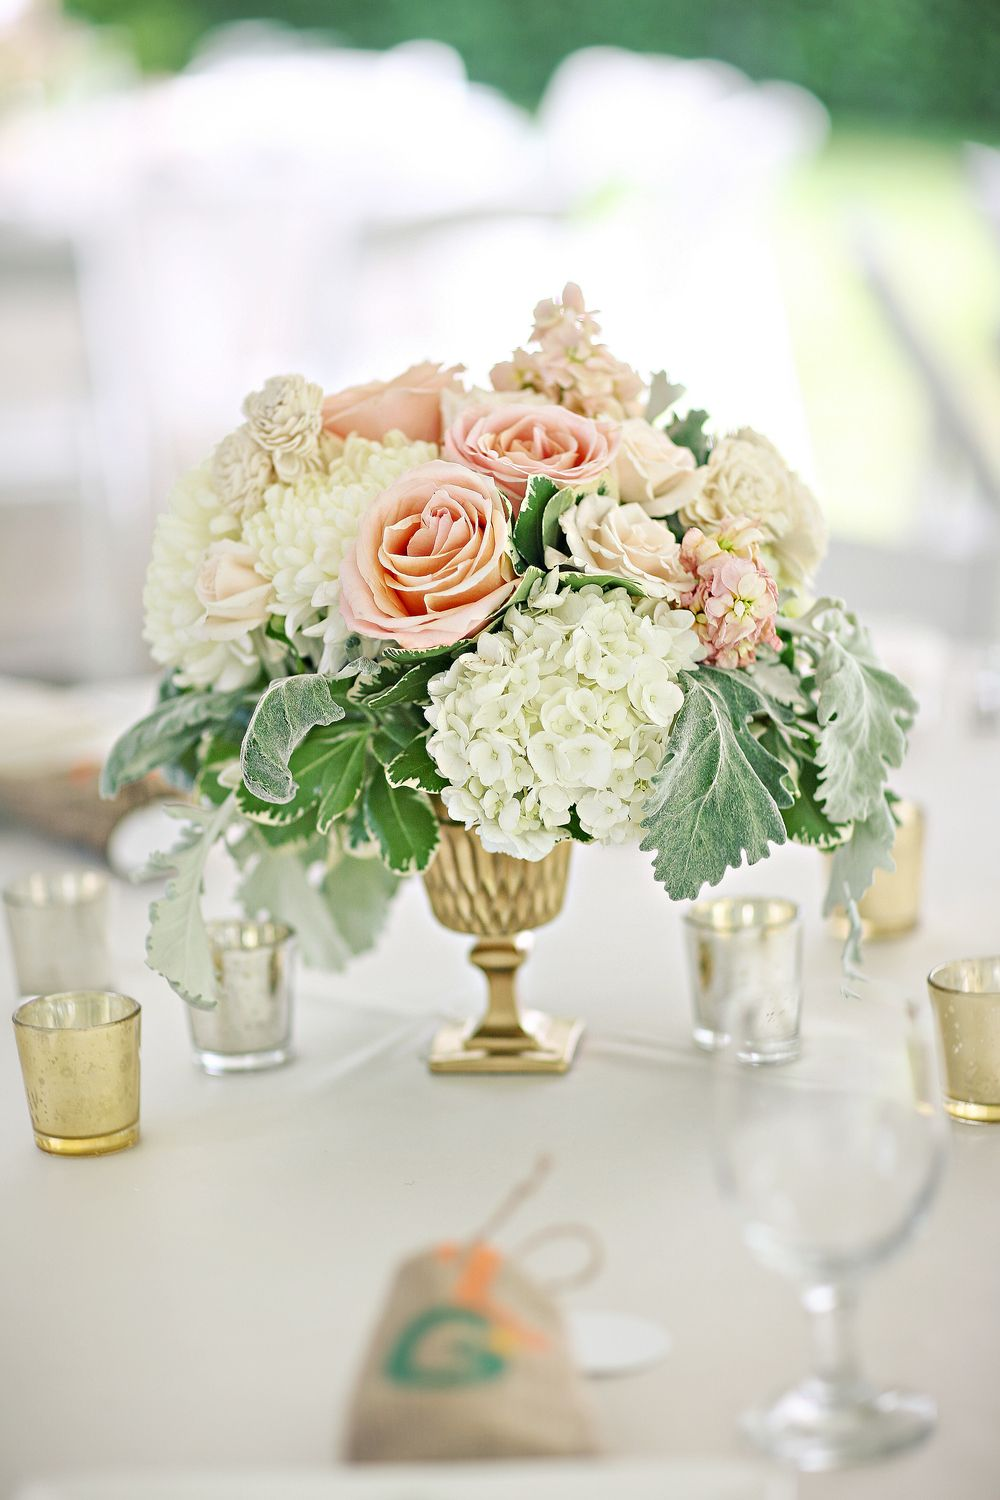 centerpieces | Gold vases, Bridal showers and Wedding